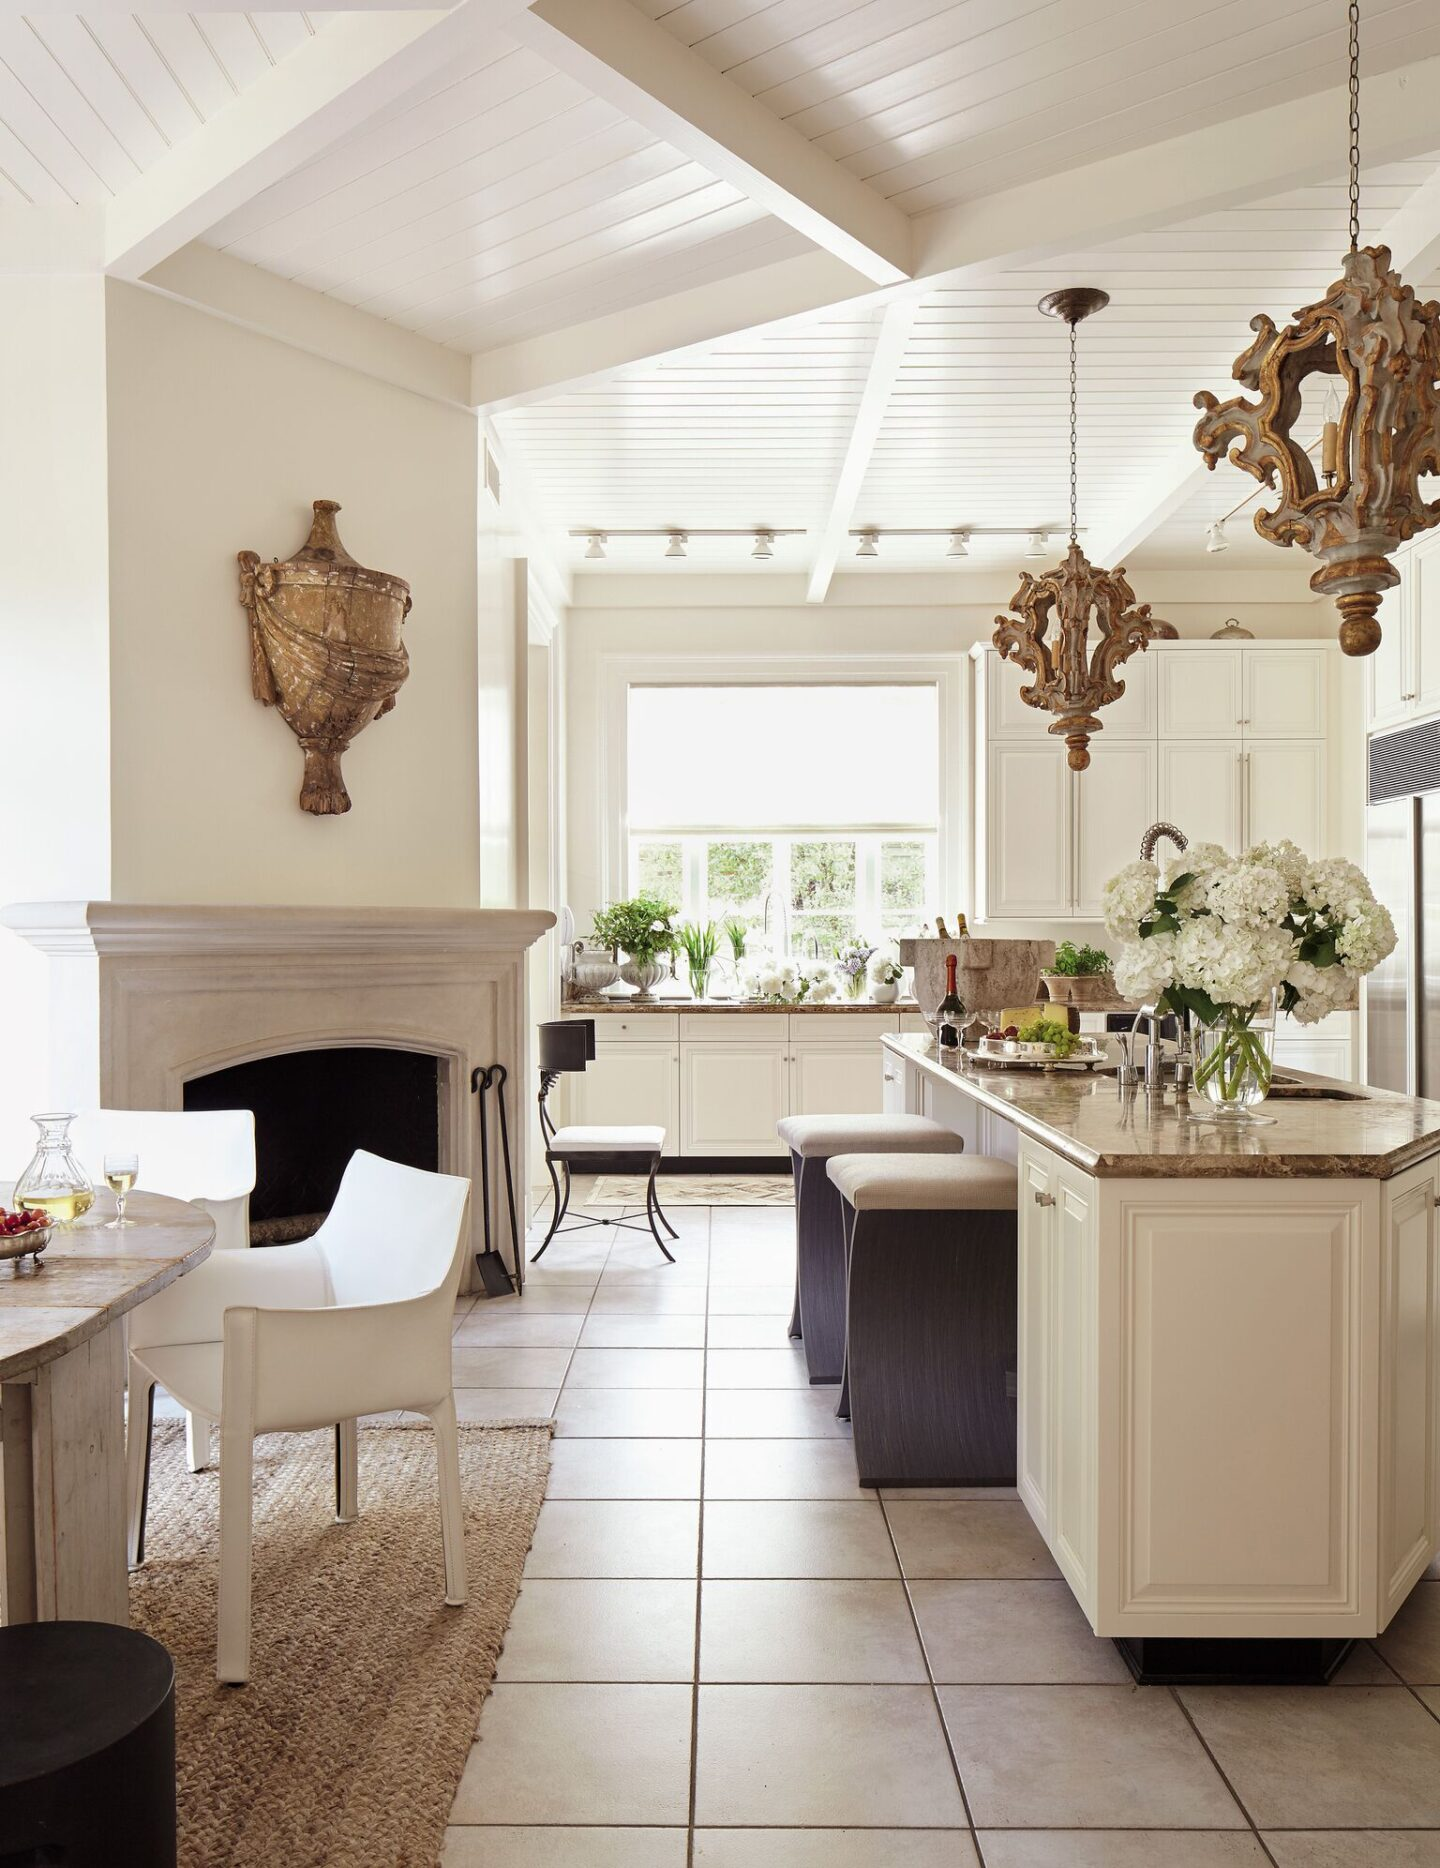 Designer Tara Shaw upgraded a builder's grade kitchen with antiques such as a 19th century urn, 18th century Italian rococo lanterns, and grand stone mortar. #tarashaw #interiordesign #kitchendesign #oldworldstyle #antiques #europeanantiques #whitekitchen #traditionalkitchen #rusticelegance